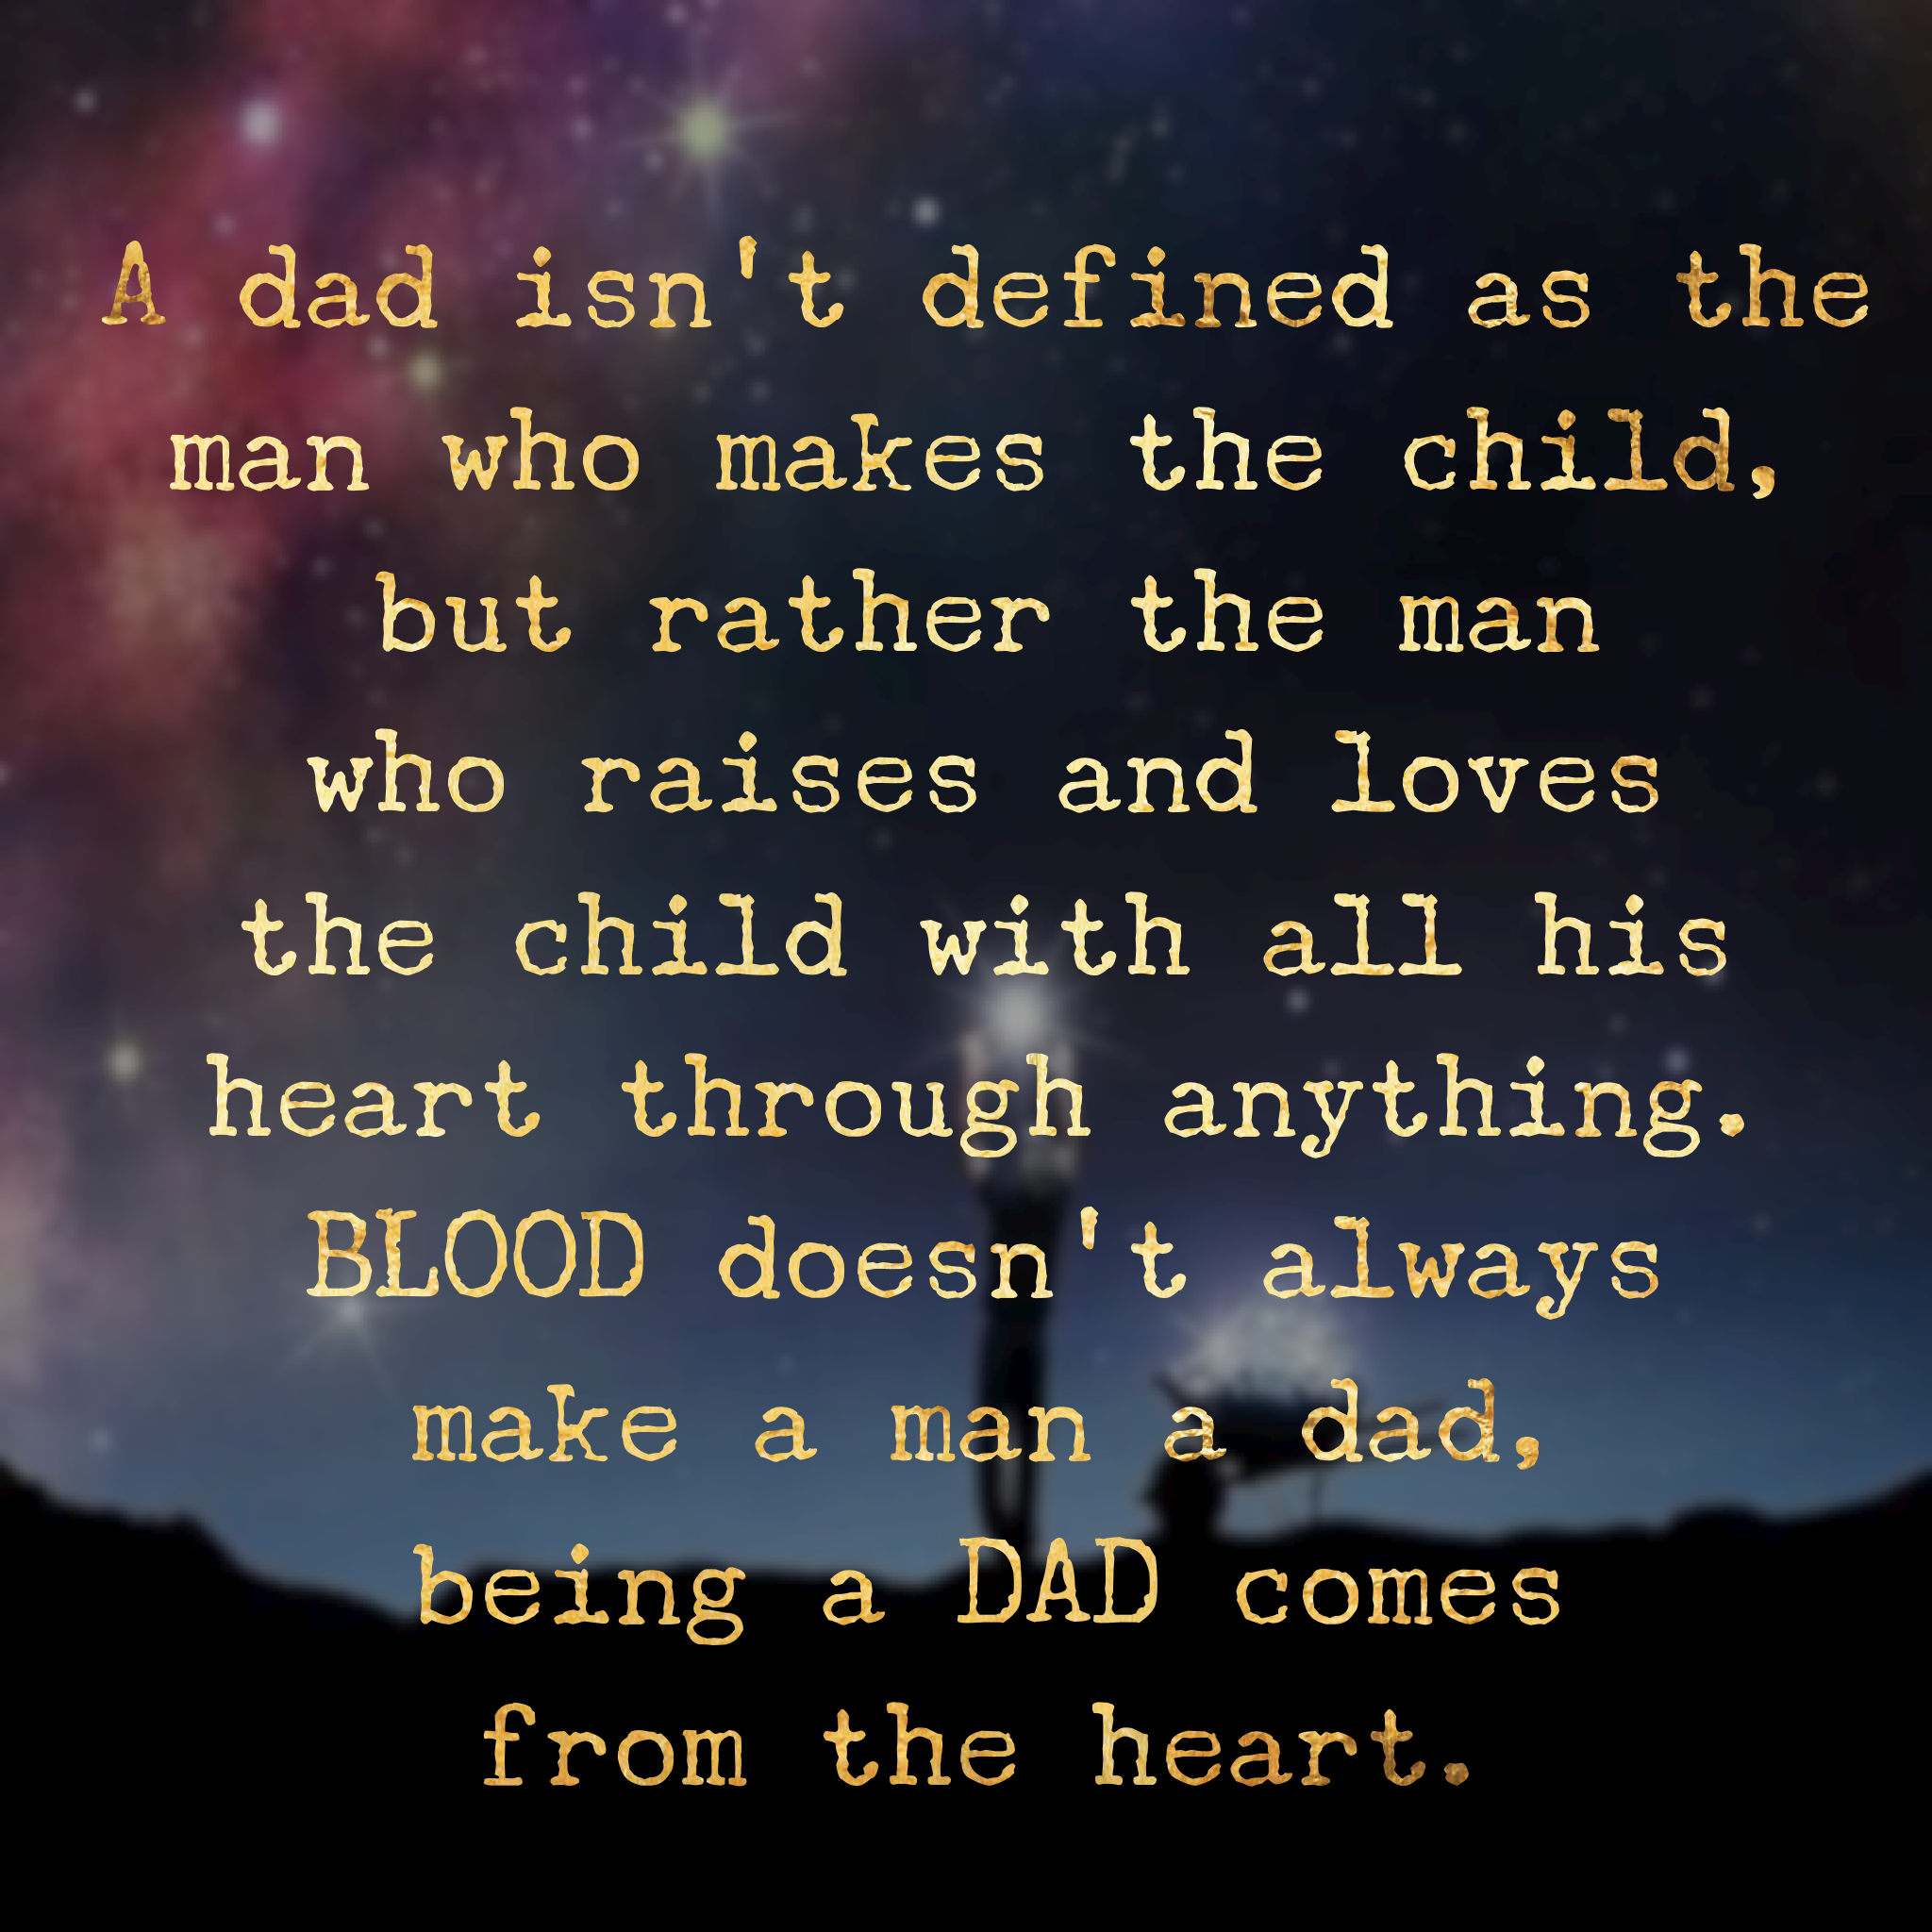 Quotes About The Love Of A Father: A Dad Isn't Defined As The Man Who Makes The Child, But